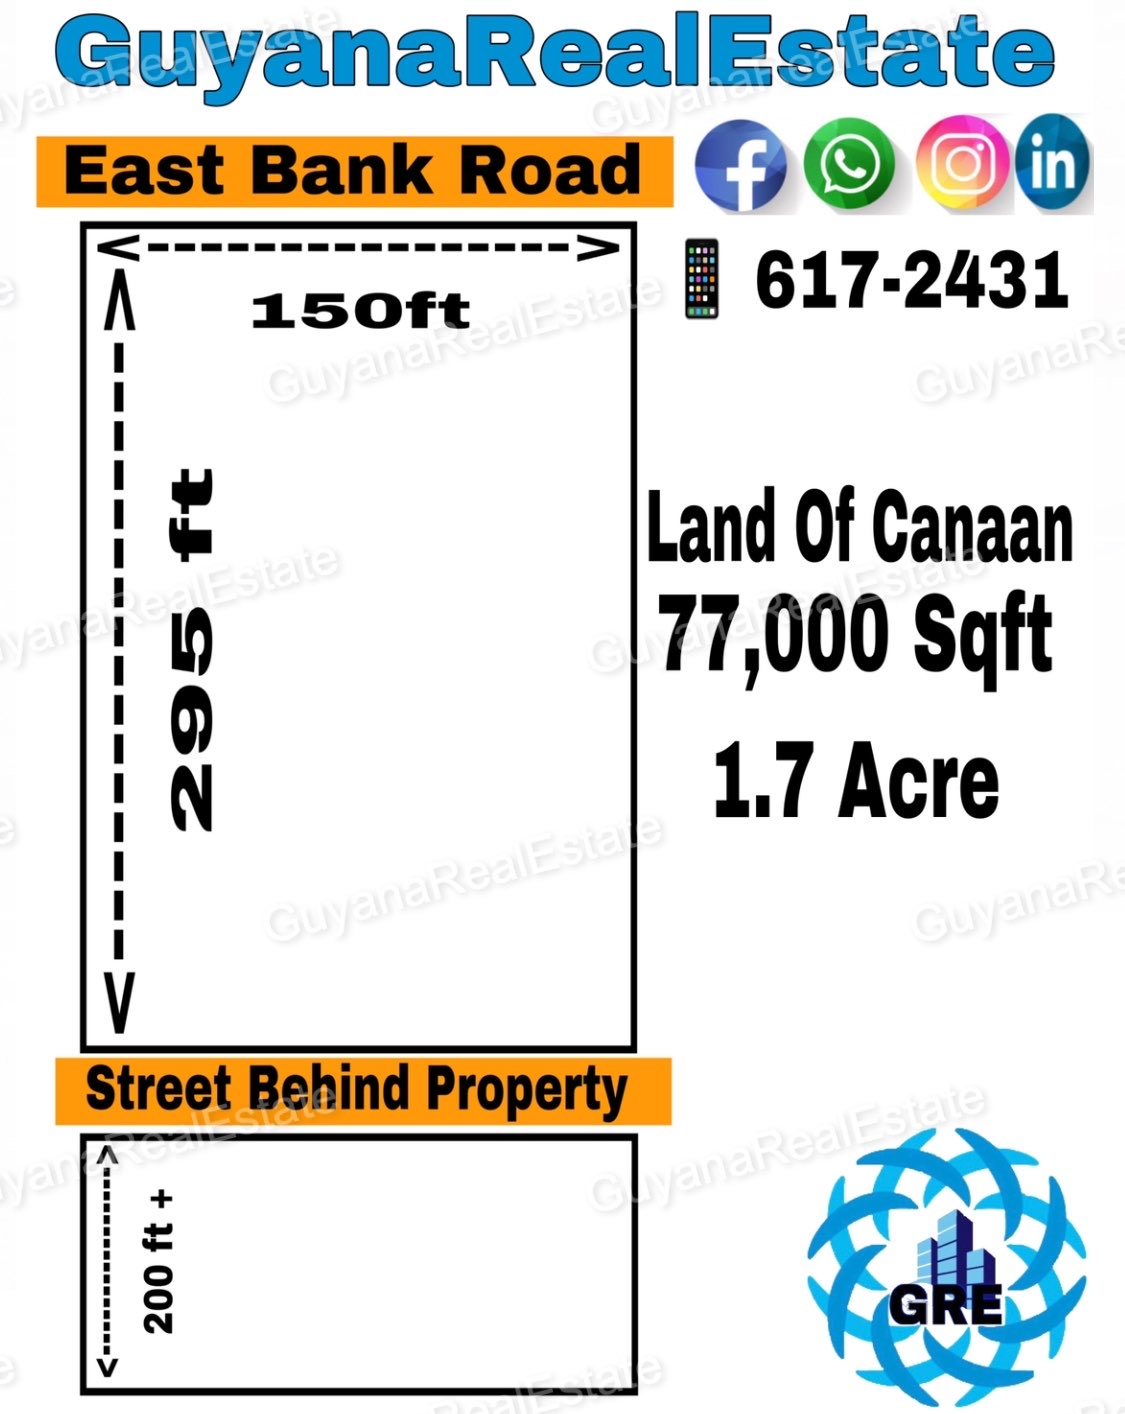 Commerical Road Side Property & Developed land / Warehouse property for sale!